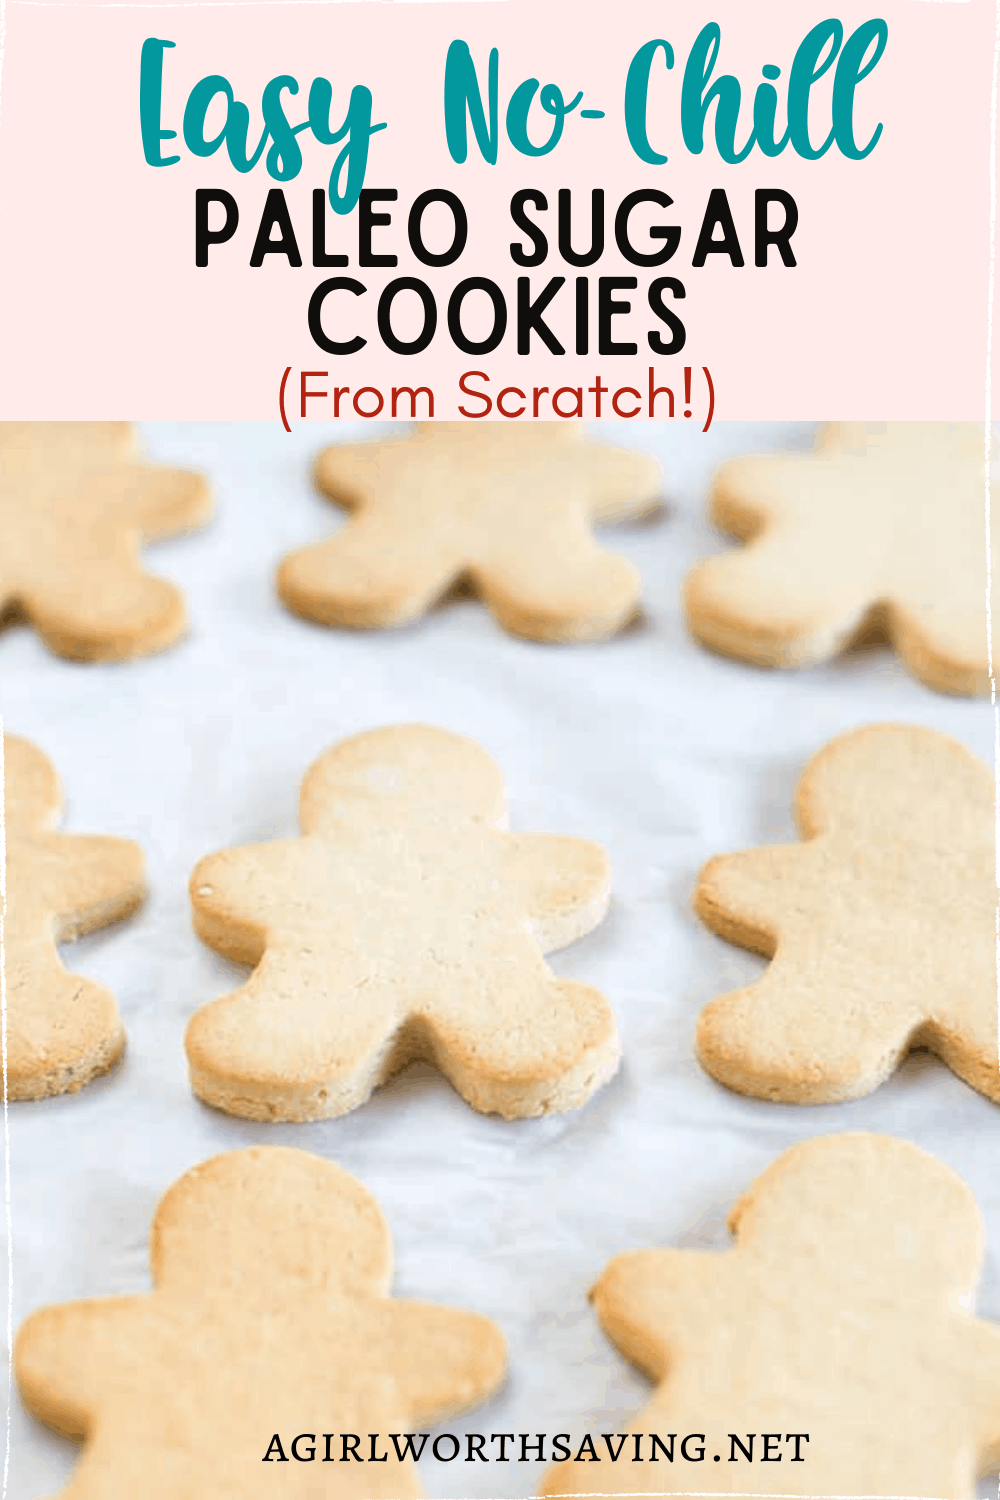 This easy no-chill paleo sugar cookies are the perfect holiday cookie! They're dairy-free but taste buttery and you can cut them out into many fun holiday shapes.